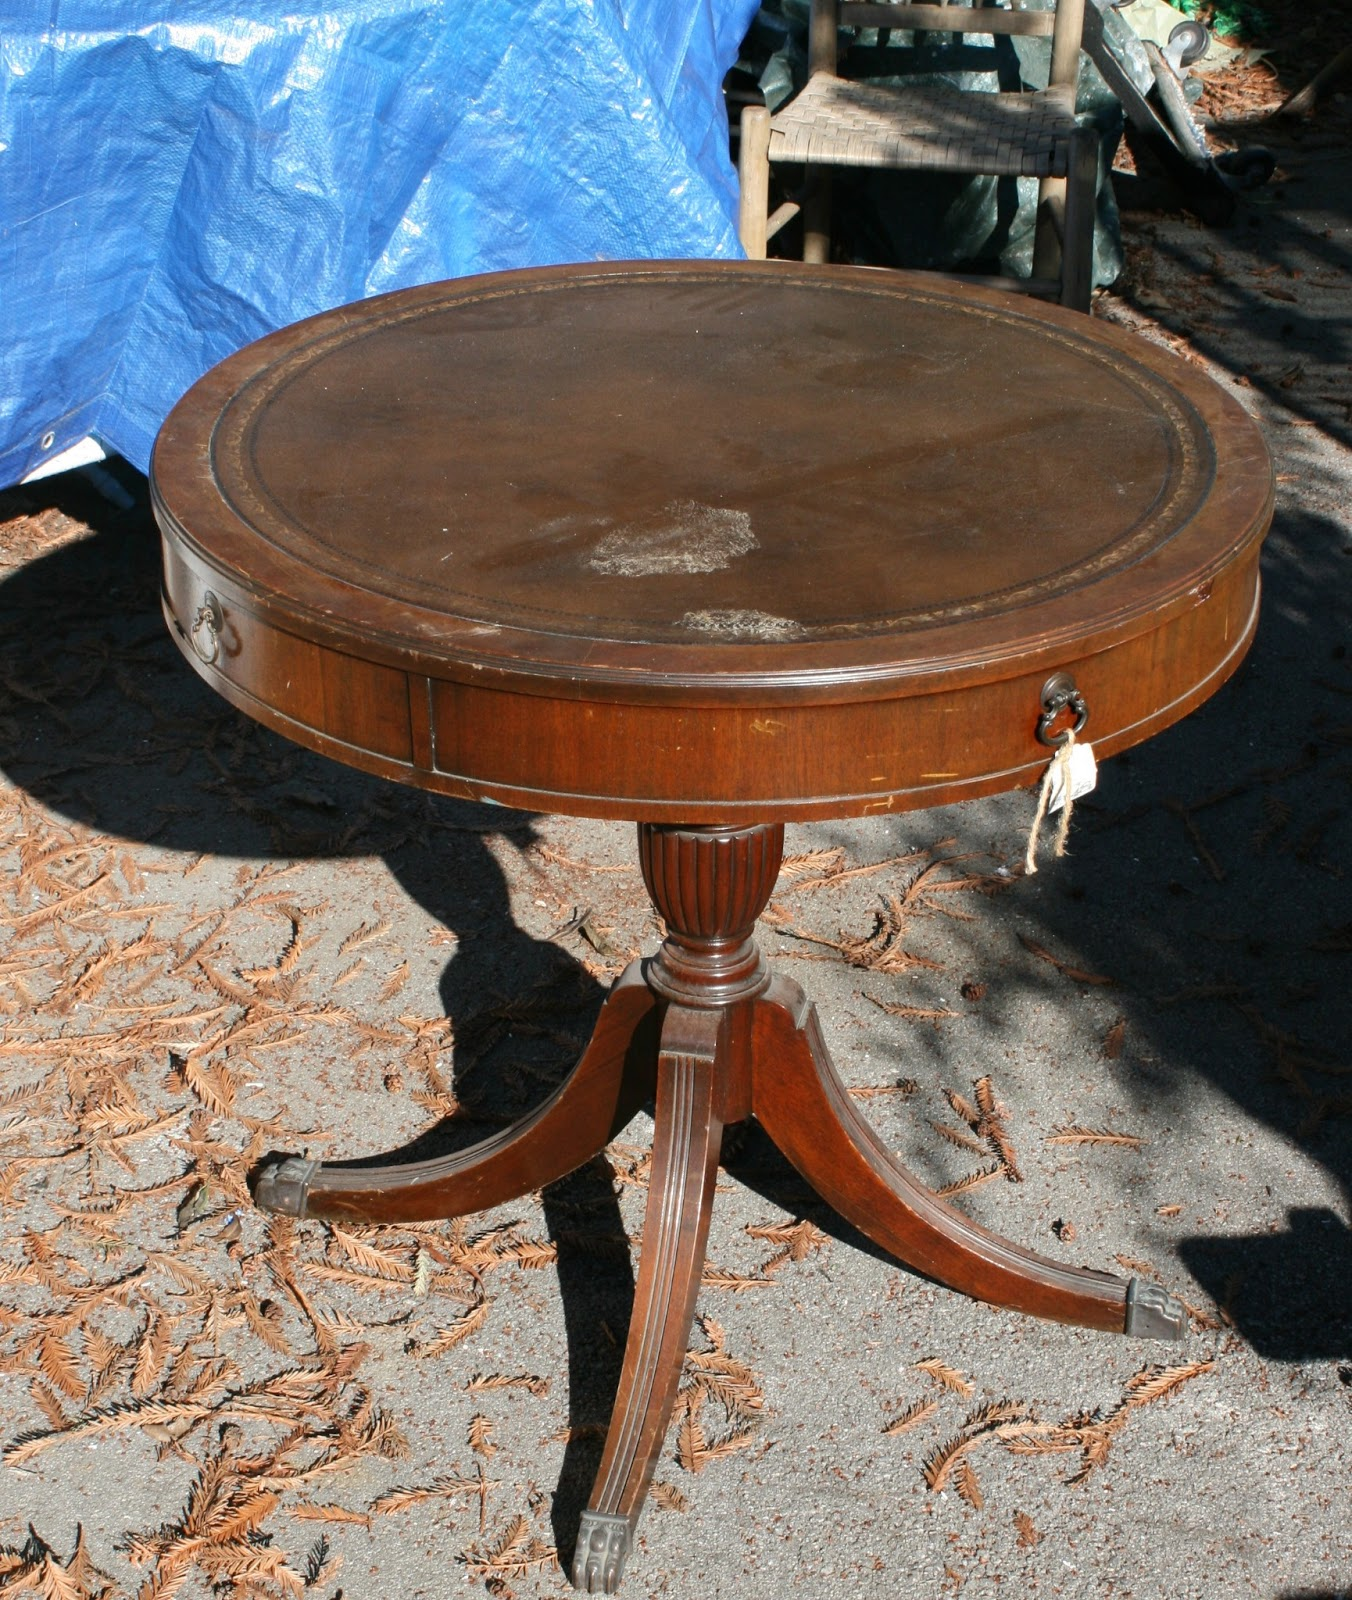 Antique Round Leather Top Coffee Table: Reloved Rubbish: Leather Topped Table: Chalk Paint Makeover